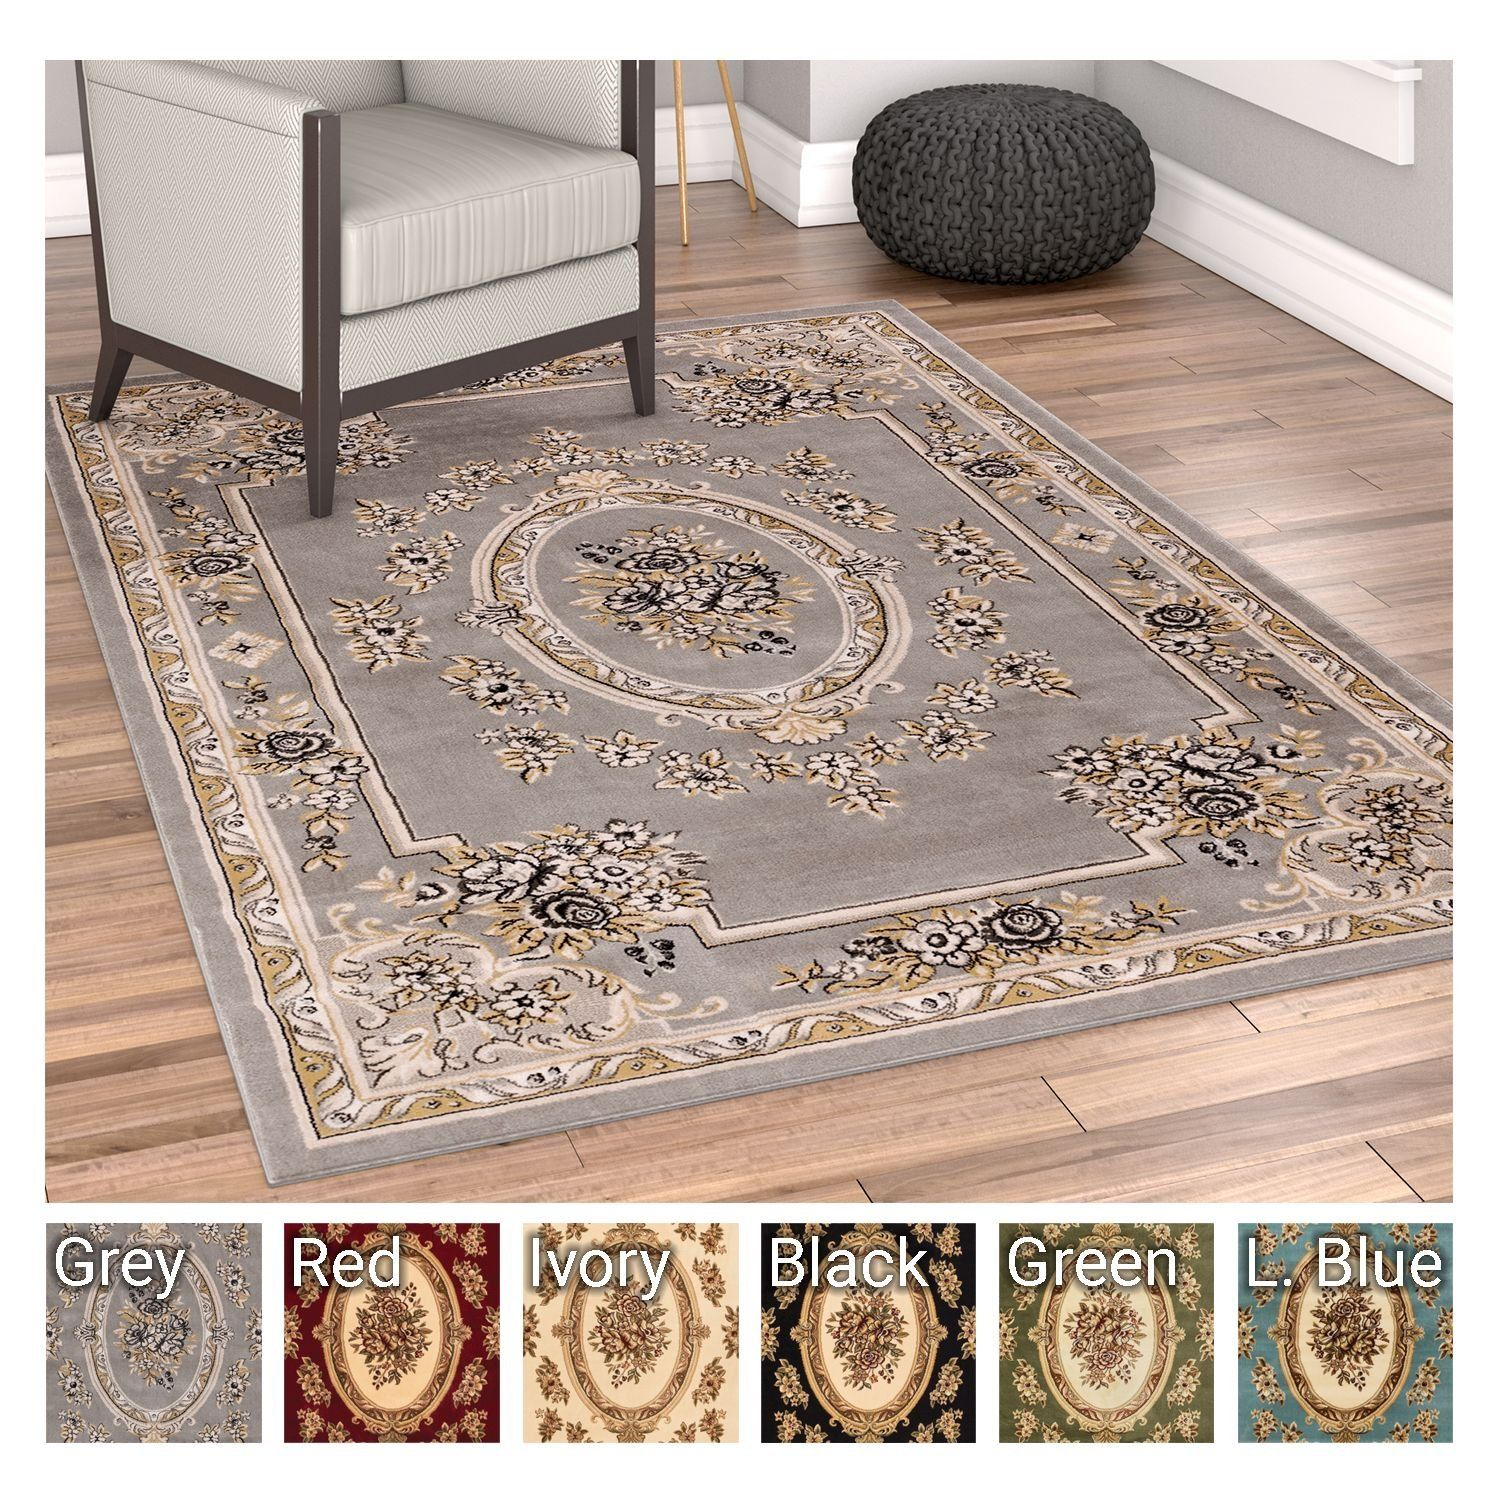 Rug European Formal Traditional Area X Easy Clean Stain Fade Resistant Shed Free Modern Classic Contemporary Thick Soft Plush Living Dining Room